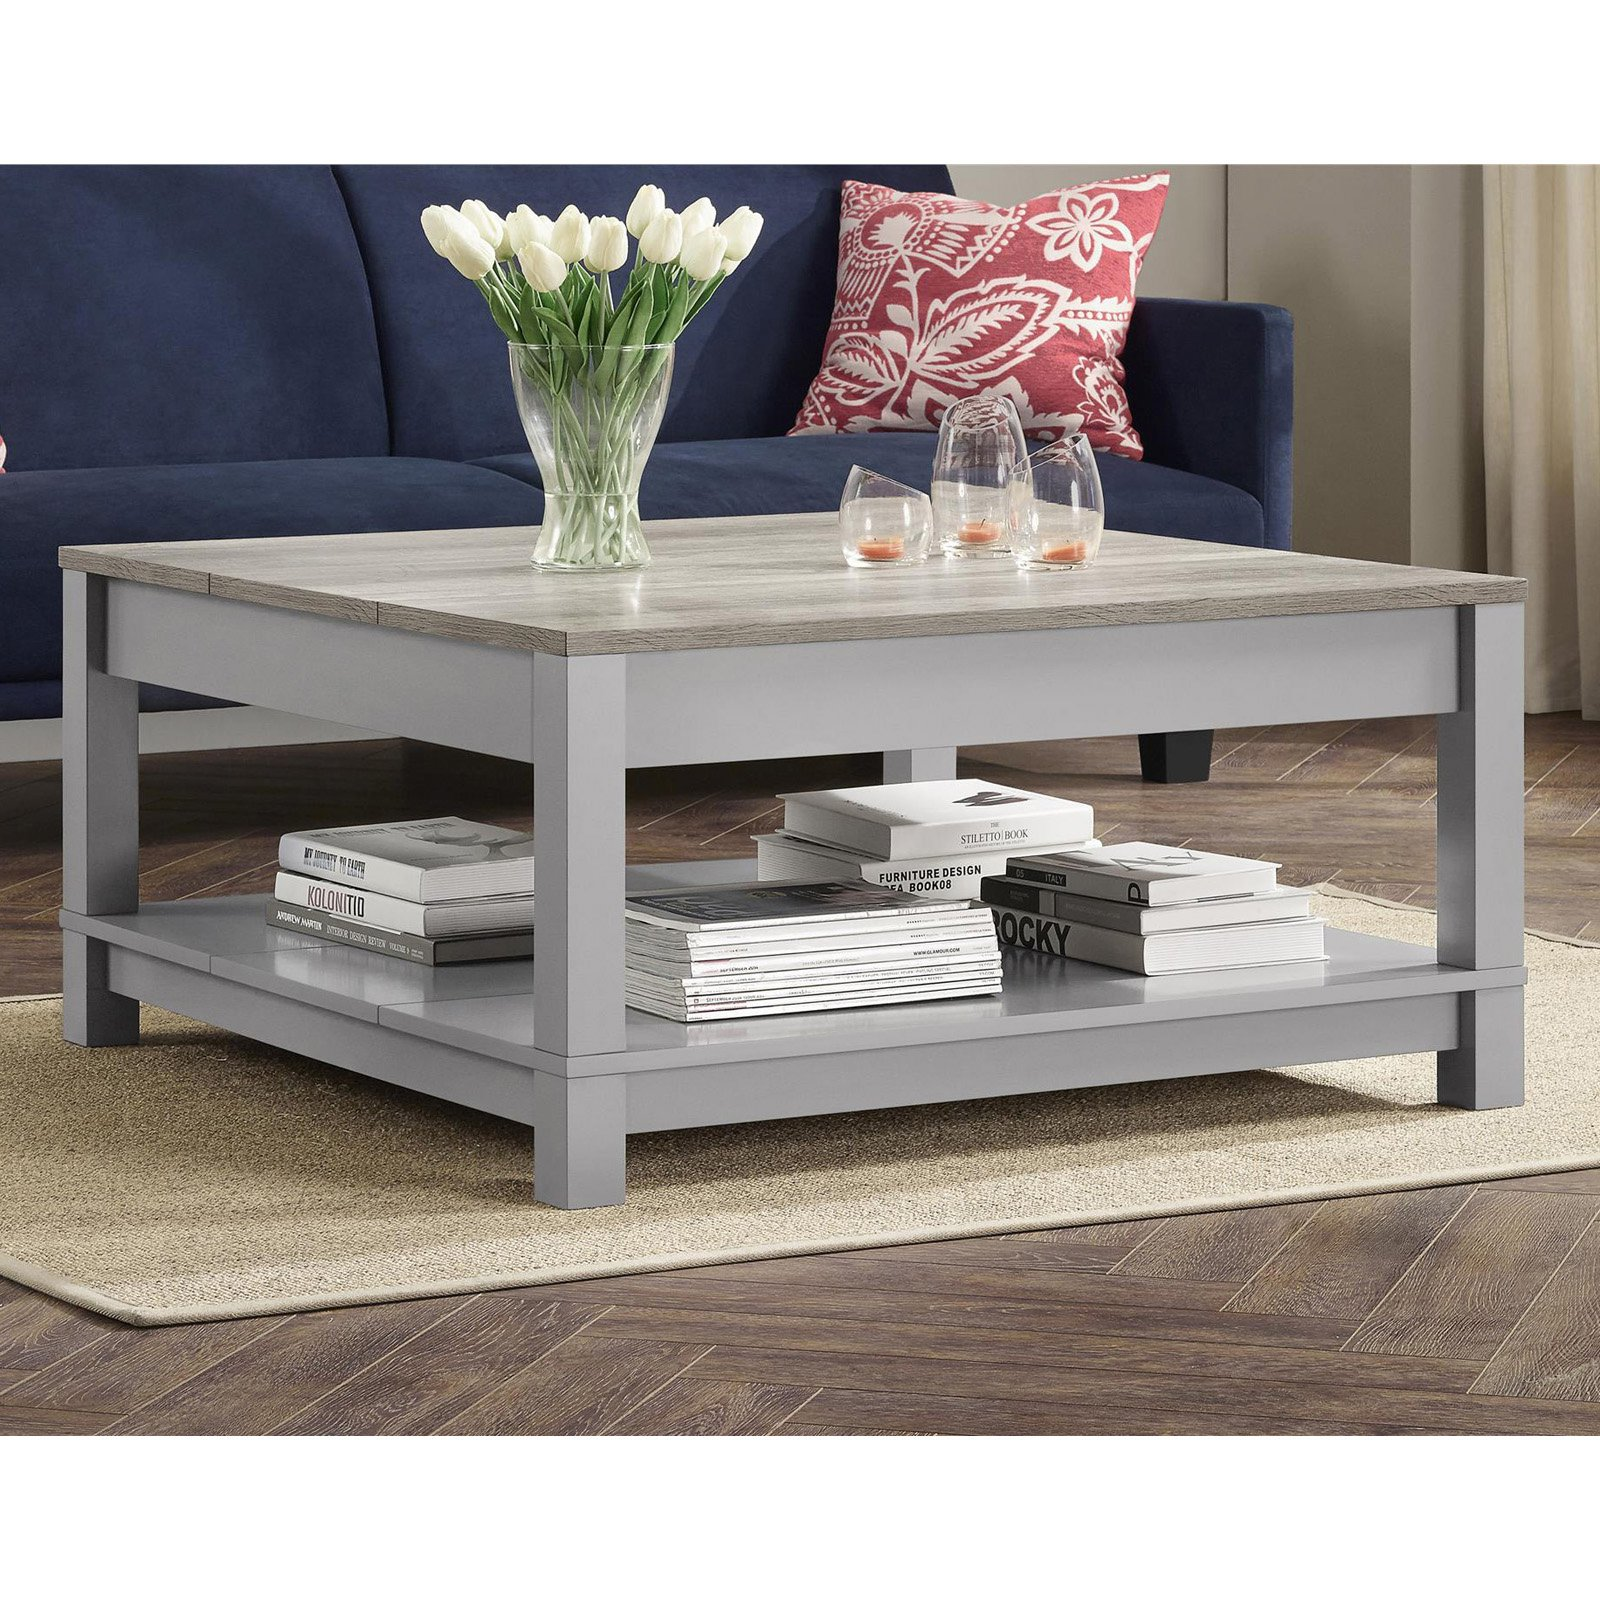 Better homes and gardens langley bay coffee table multiple colors better homes and gardens langley bay coffee table multiple colors walmart watchthetrailerfo